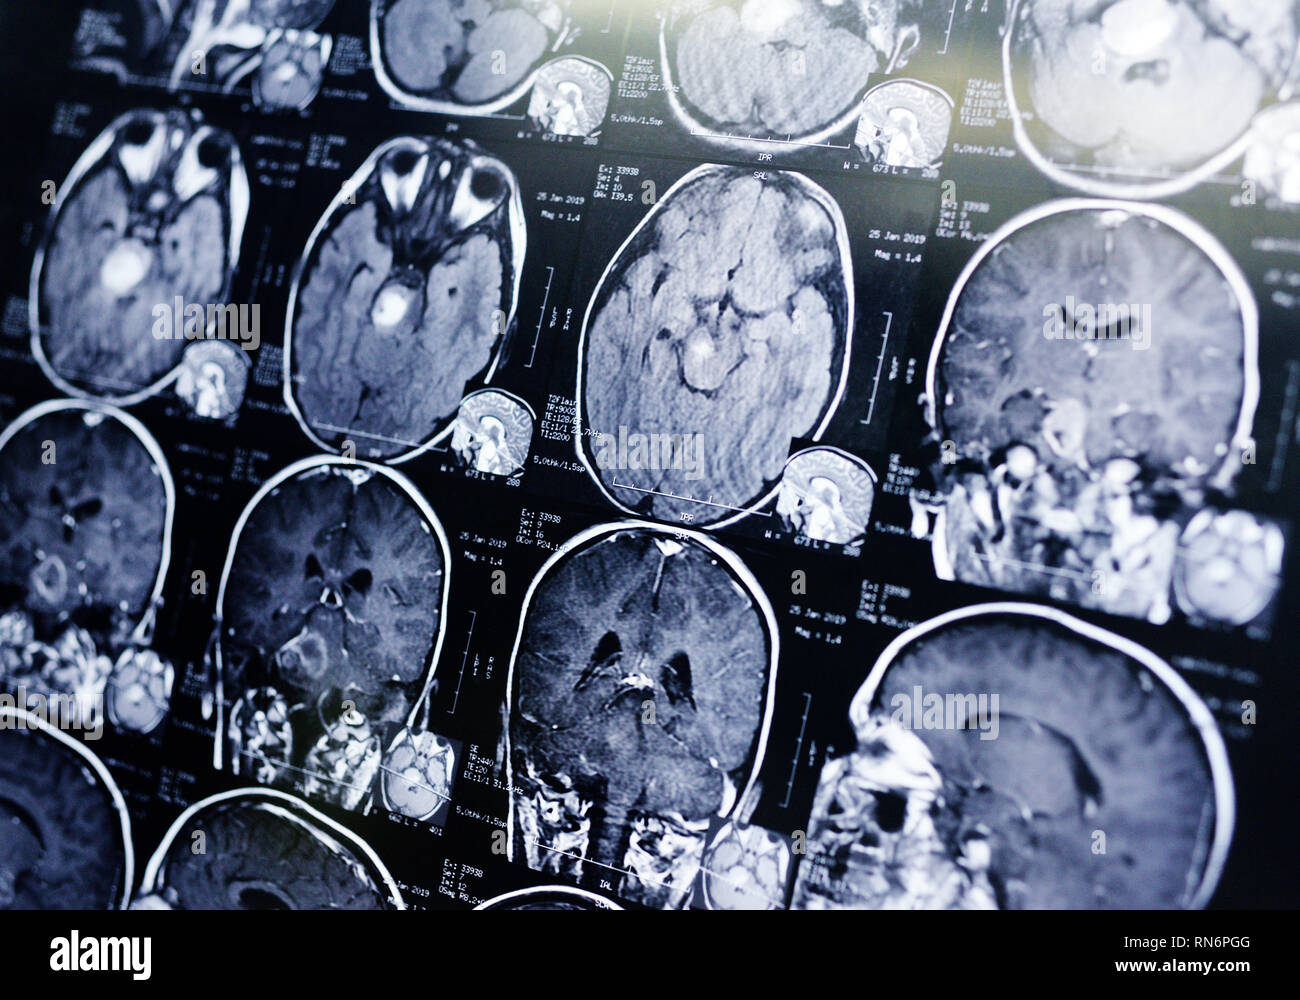 MRI scan of a patient with a tumor in the brain stem.  - Stock Image